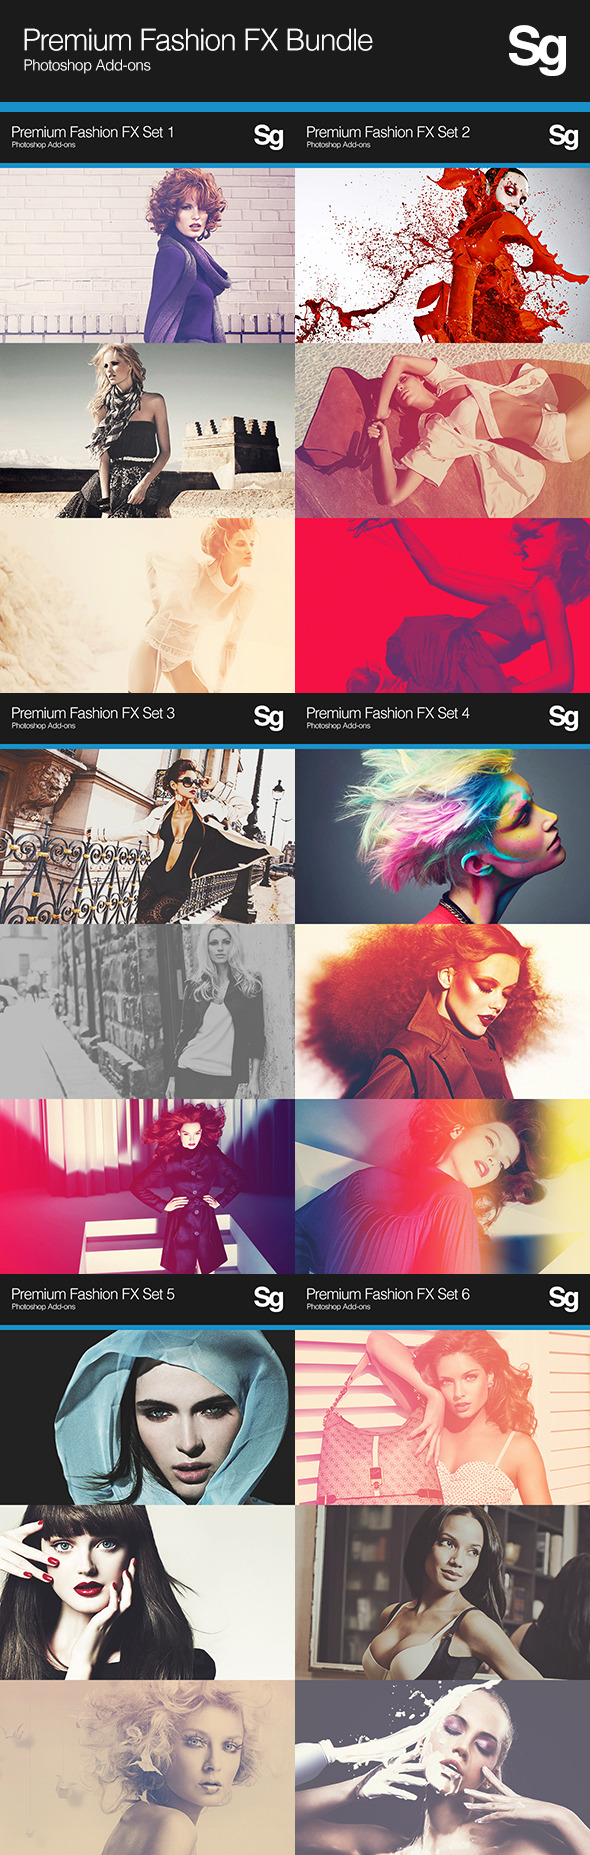 Premium Fashion FX Bundle - Photo Effects Actions